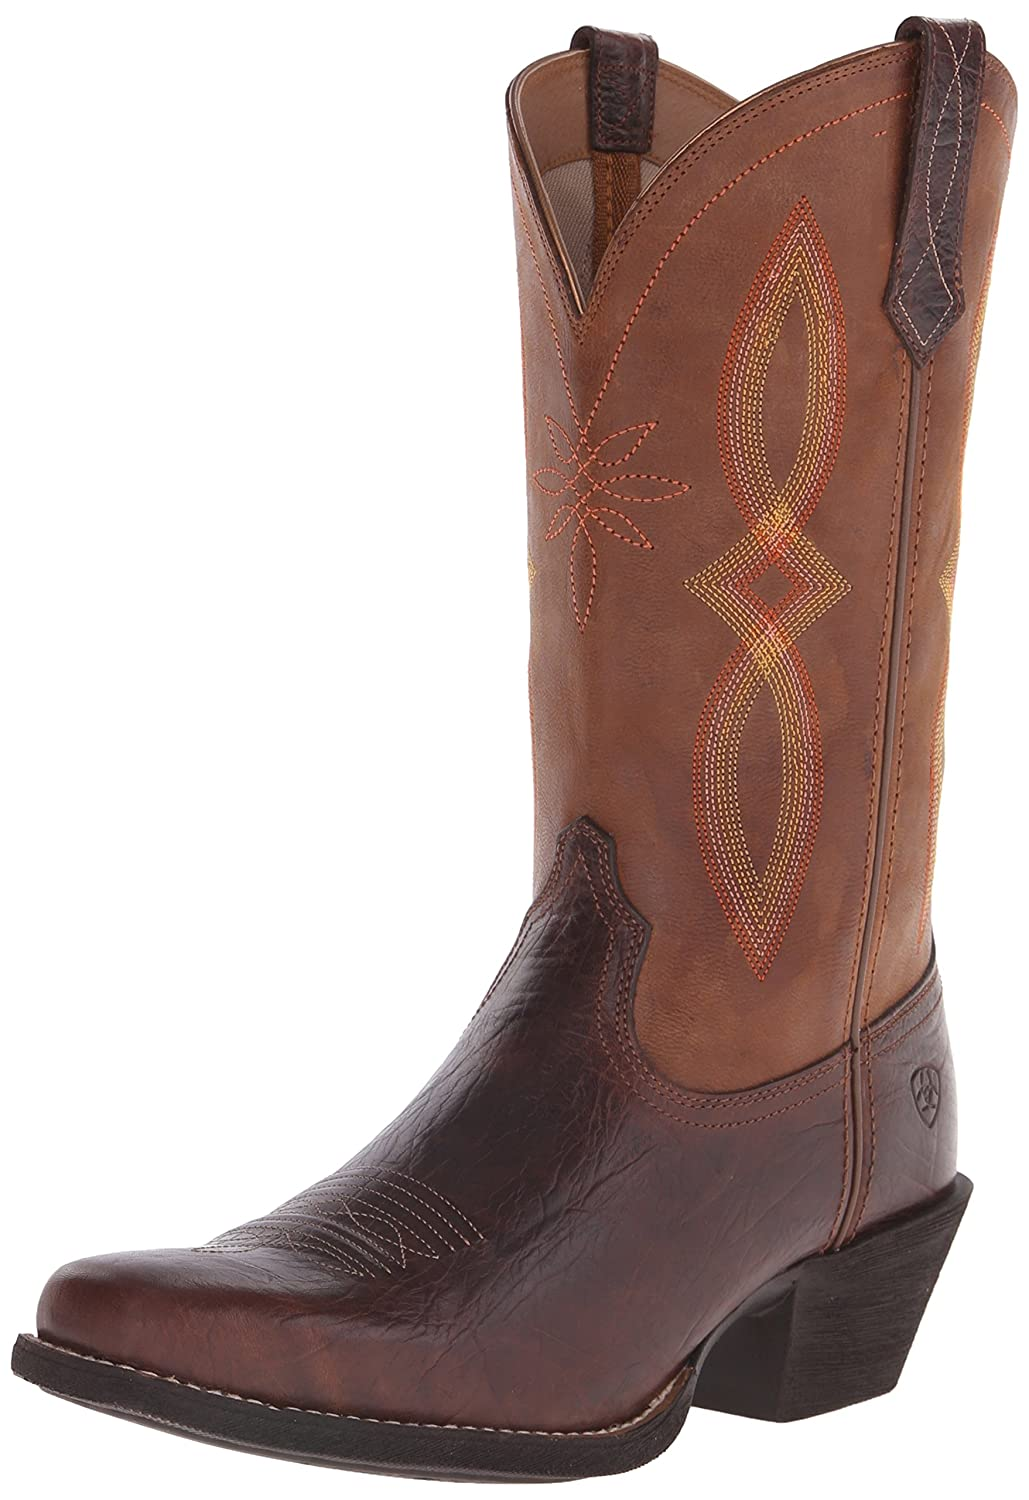 8933f4e1e4c Ariat Women's Round up Narrow Square Toe II Western Cowboy Boot